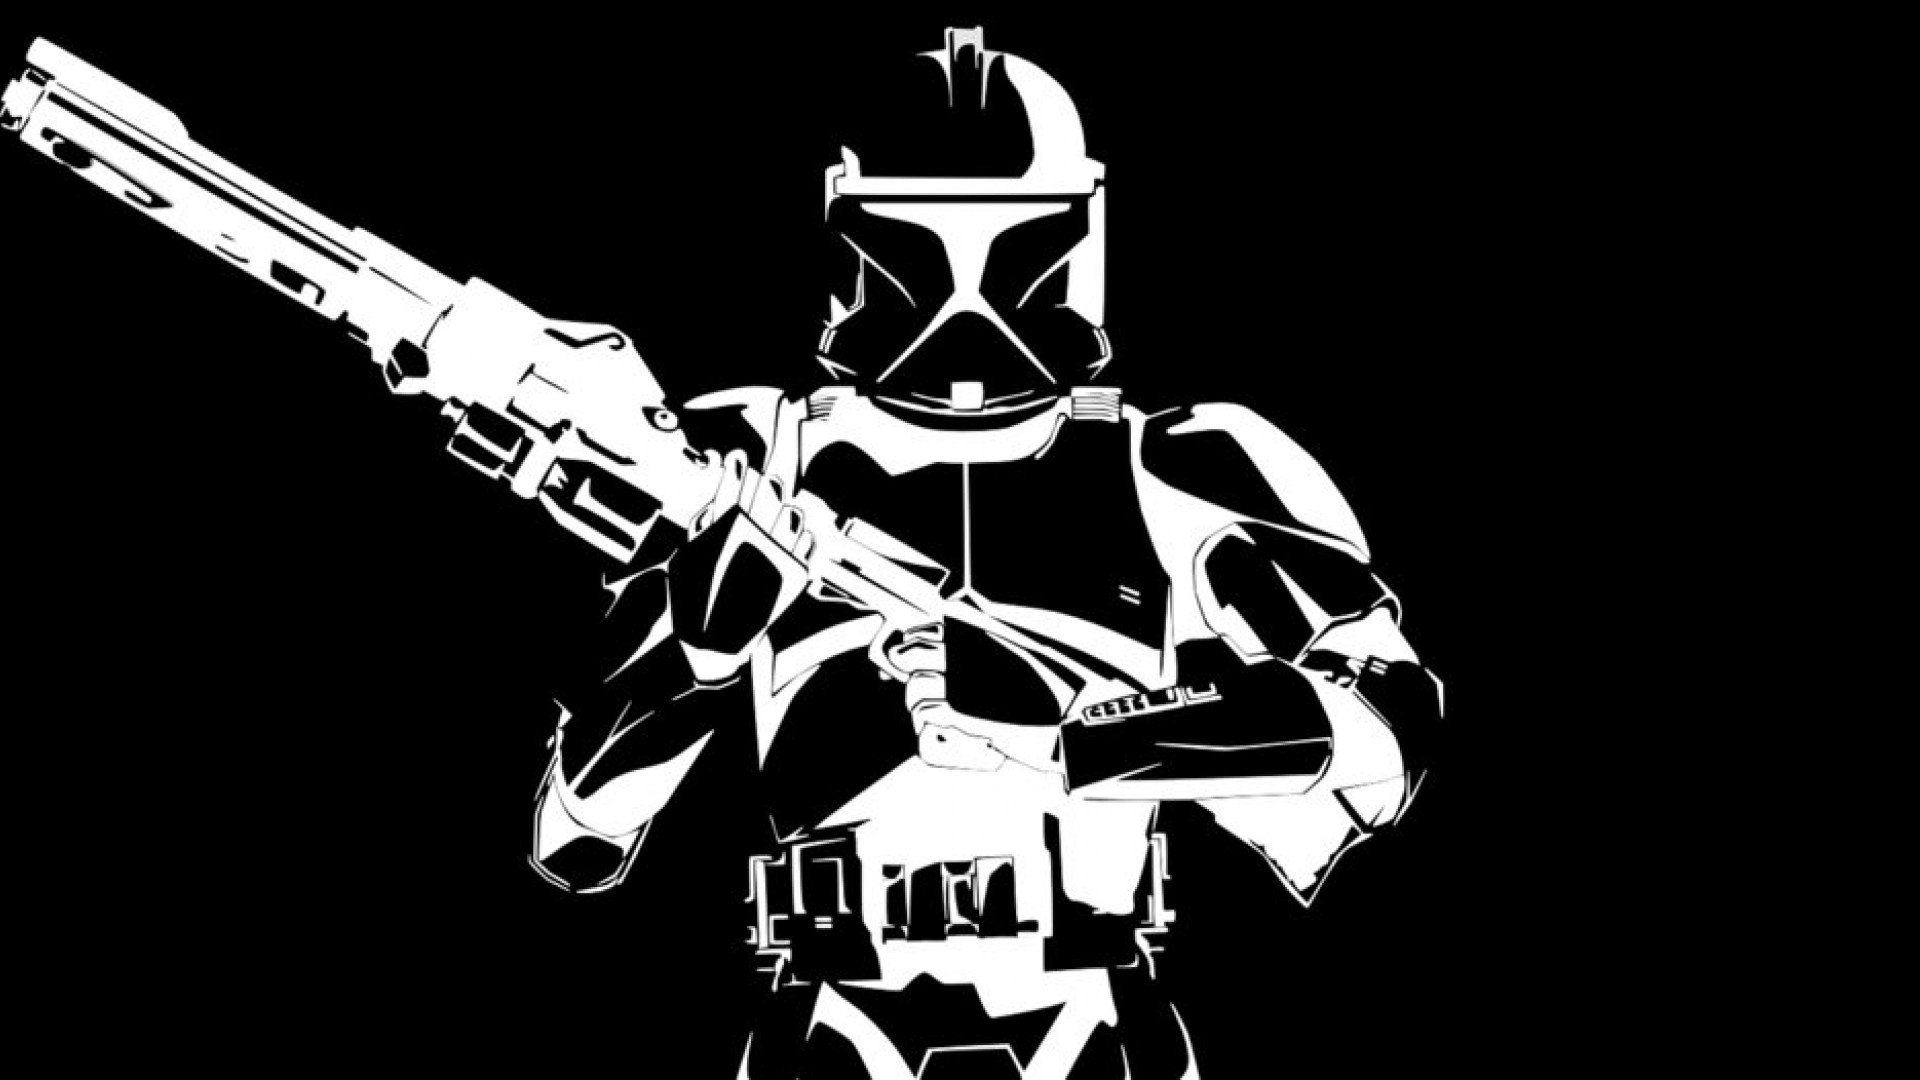 Black And White Star Wars Hd Wallpaper Iphone 7 Plus Iphone 8